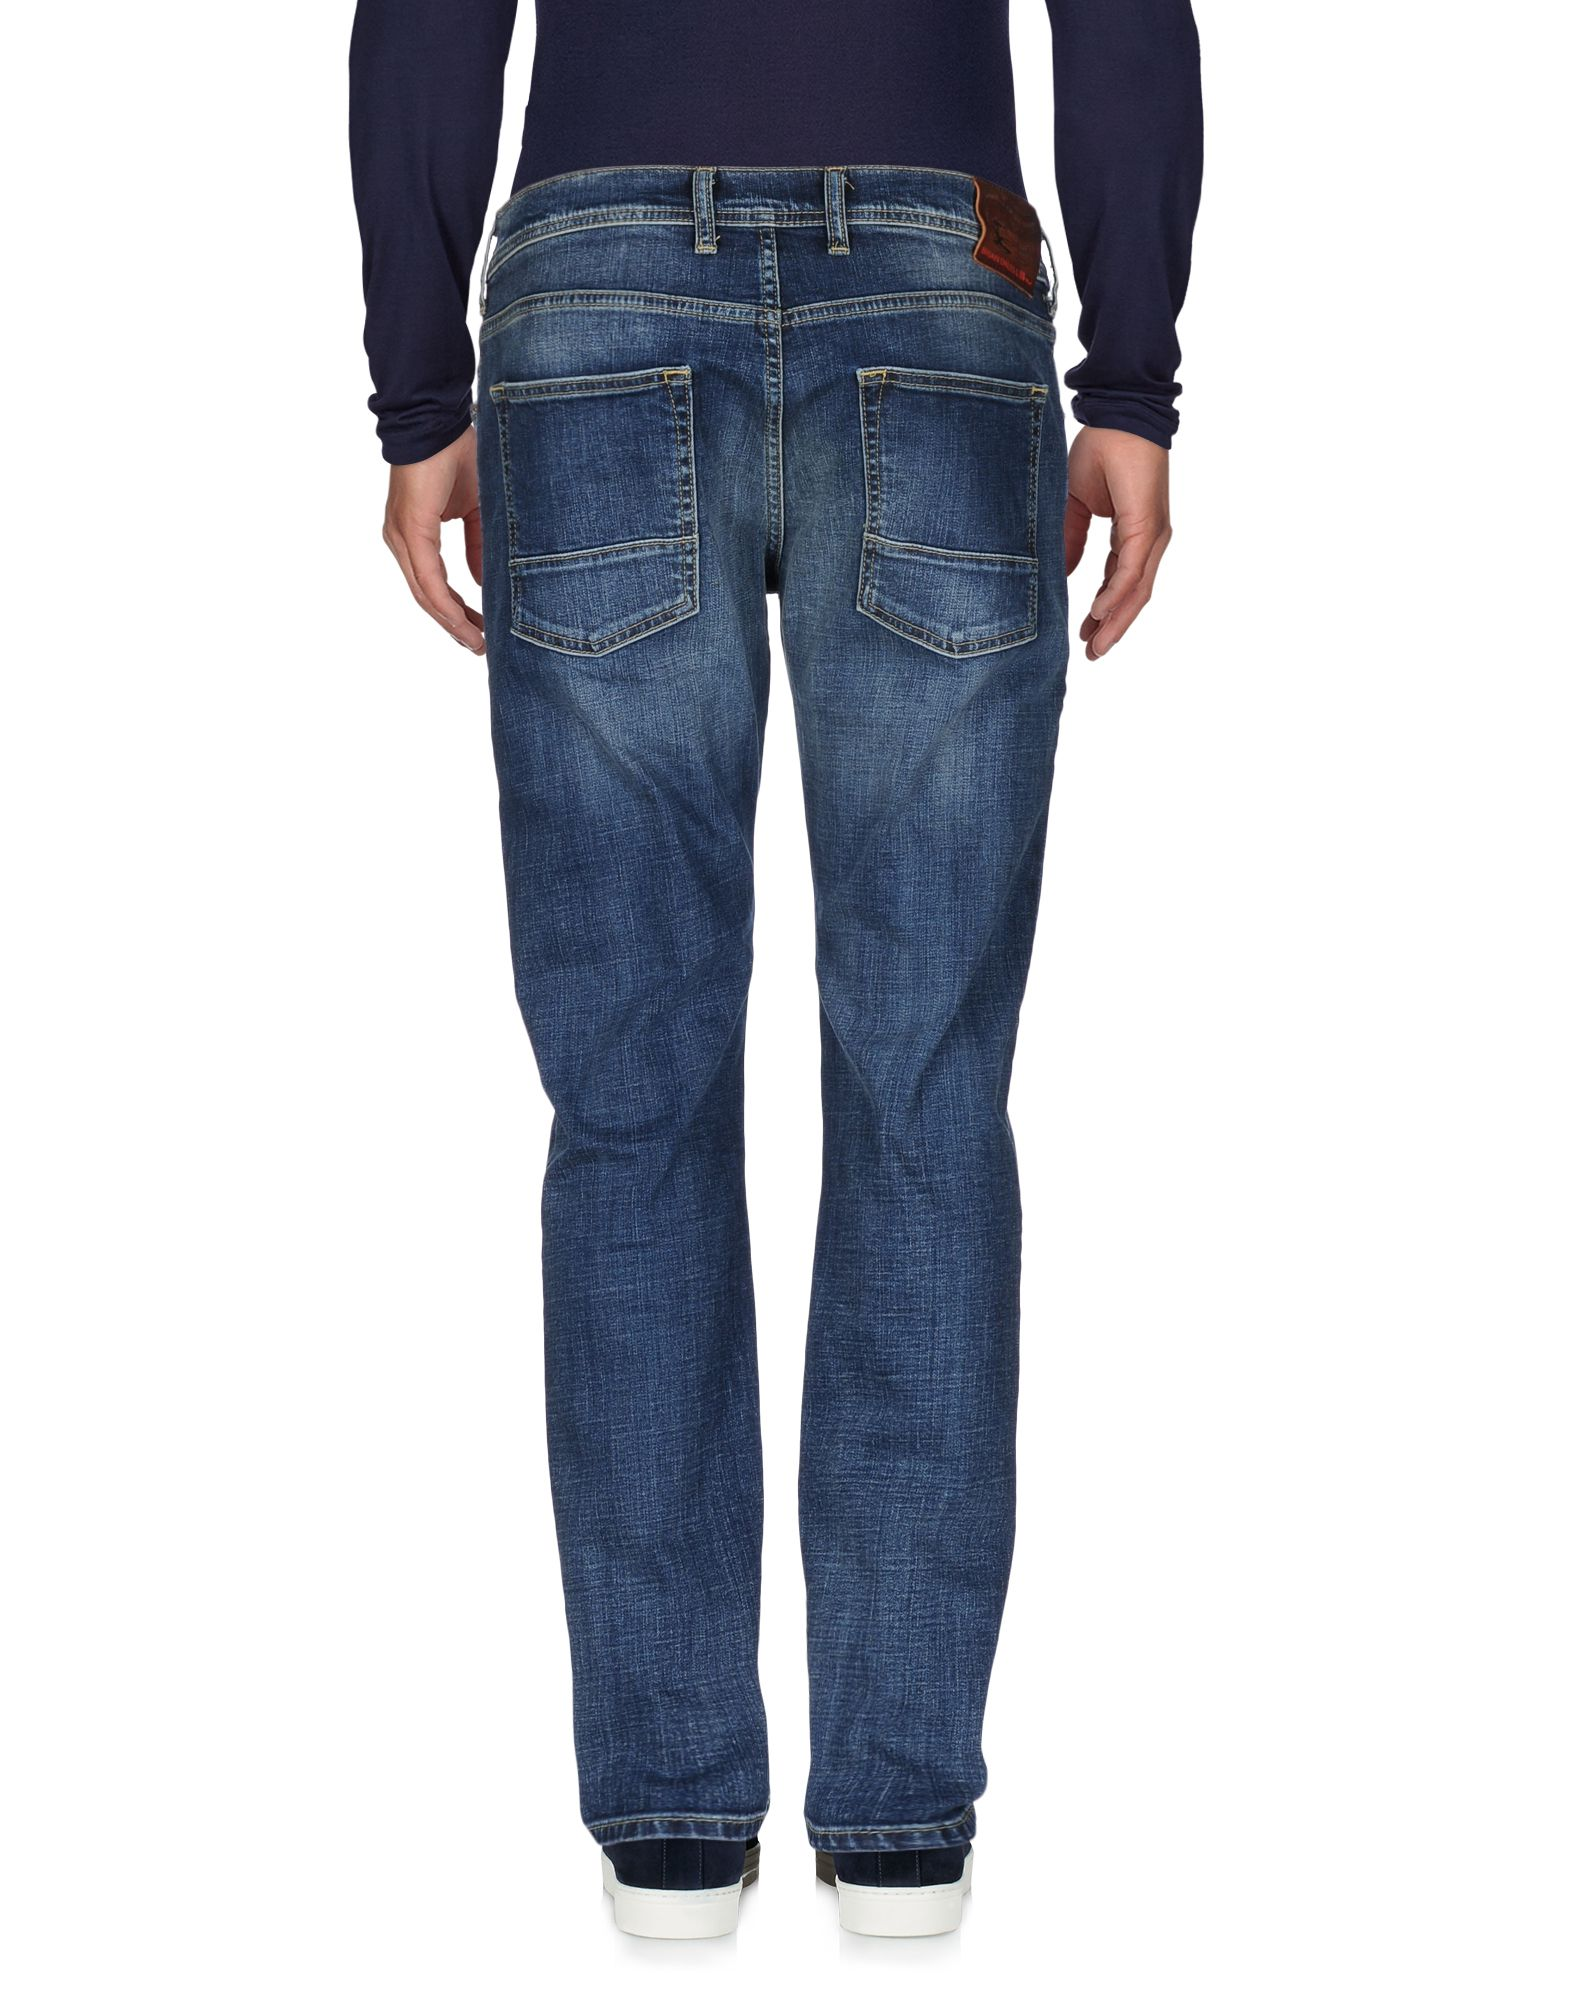 Pantaloni Jeans Dales Brian Dales Jeans & Ltb Uomo - 42580970US 8252af